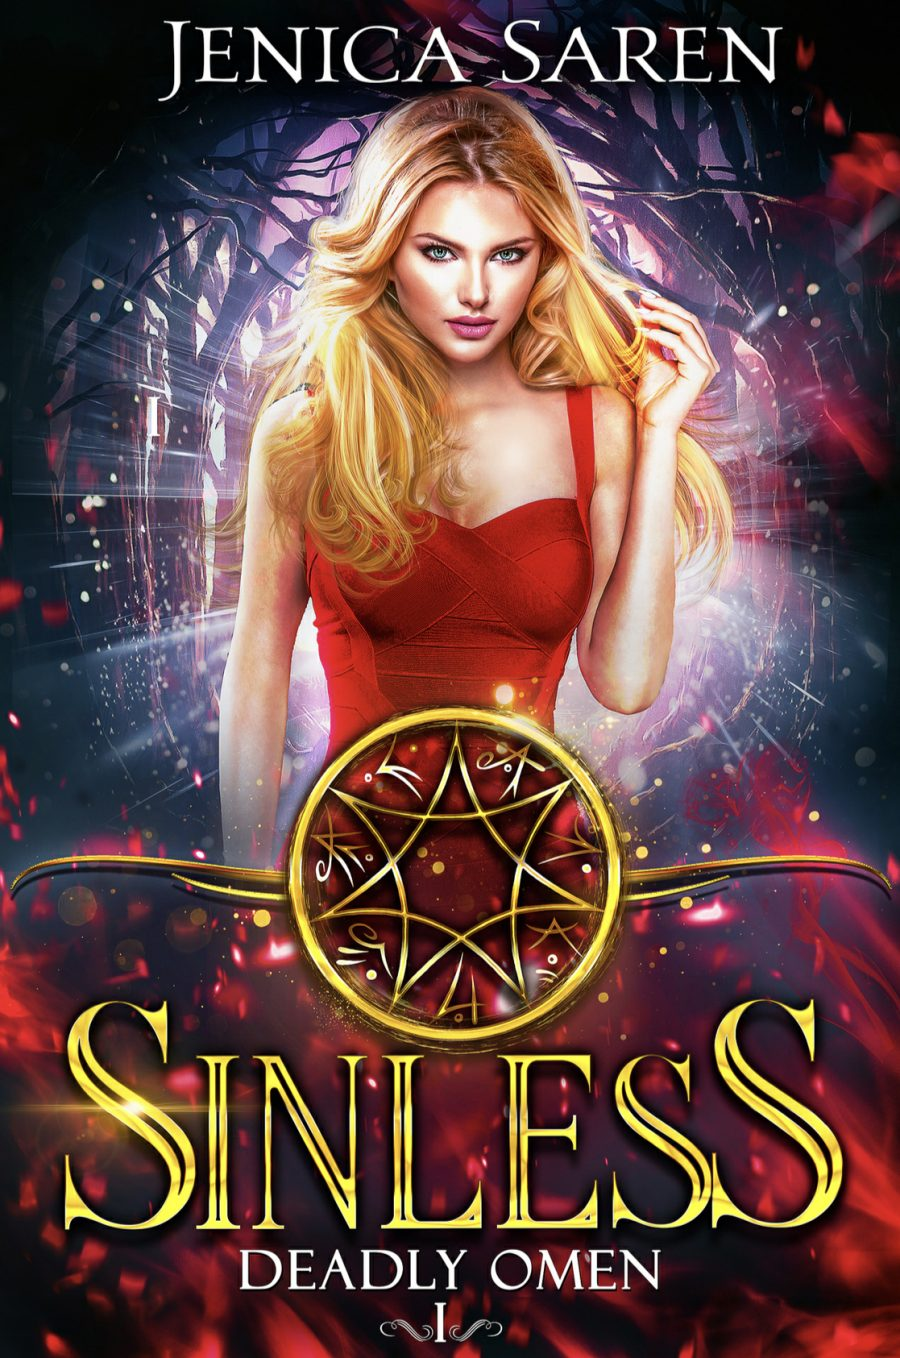 Sinless: Deadly Omen Book 1 by Jenica Saren - A Book Review #BookReview #PNR #MediumBurn #RH #ReverseHarem #7deadlysins #WhyChoose